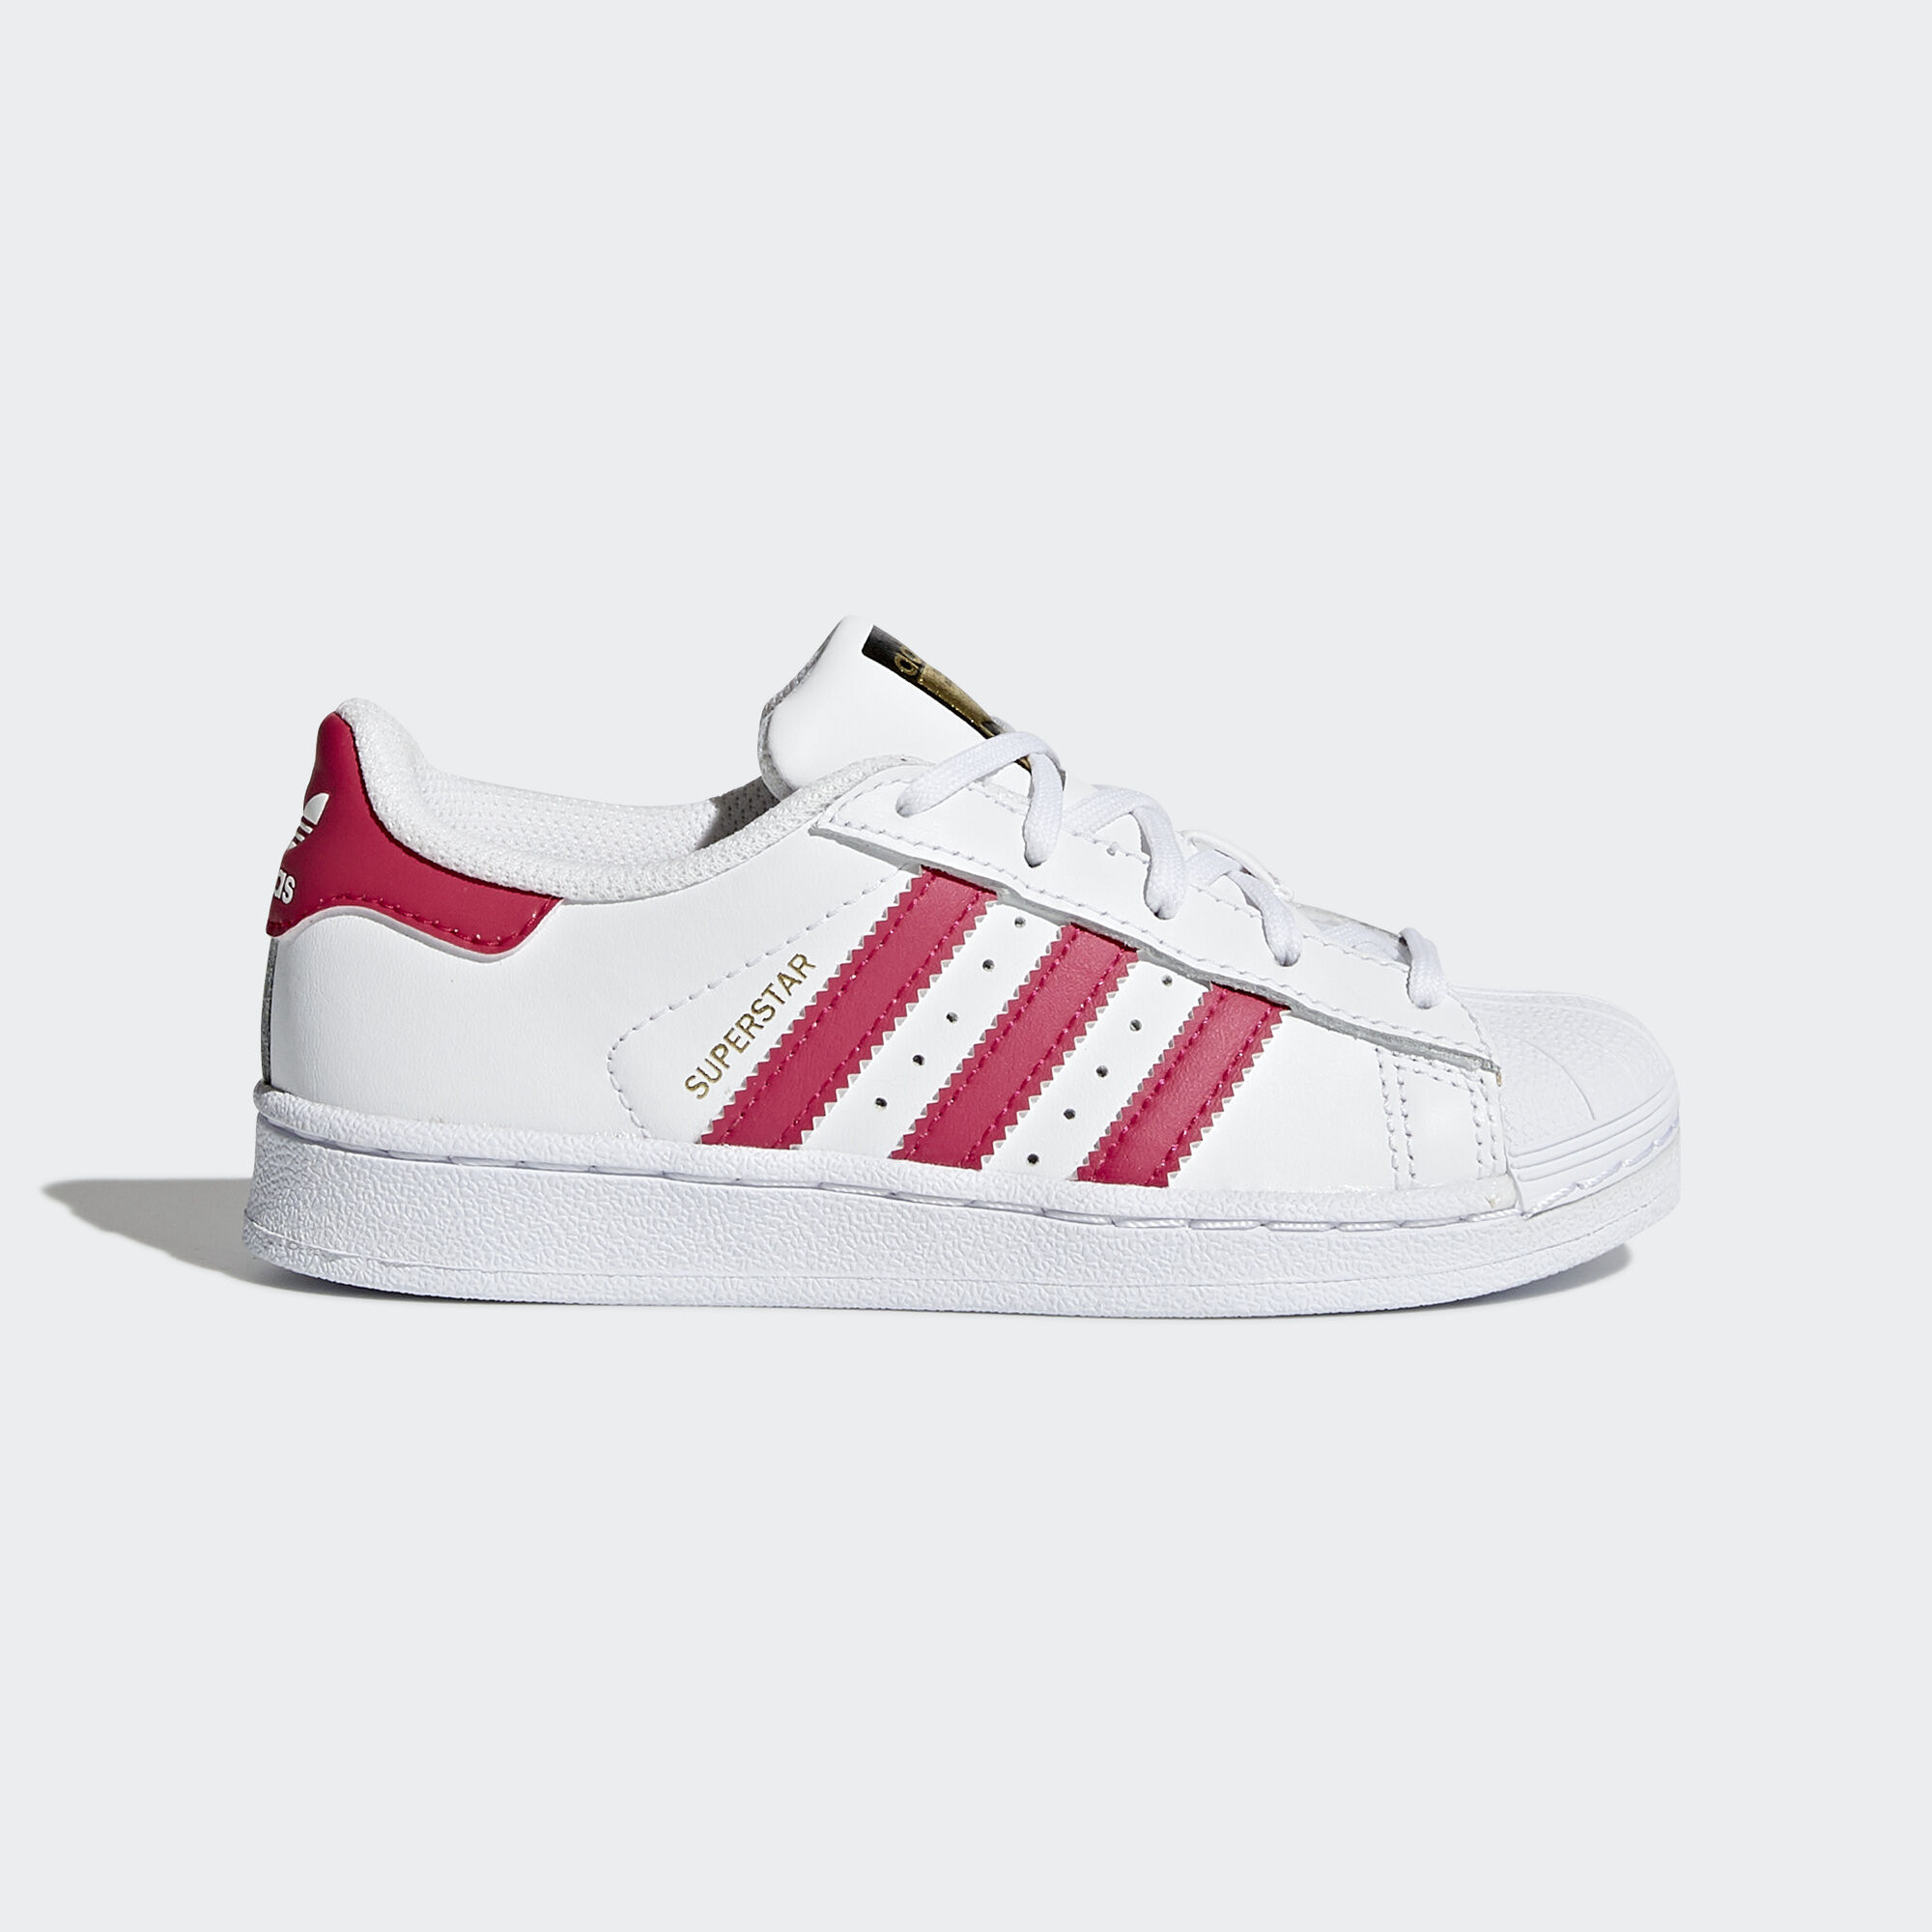 image: adidas superstar [35]